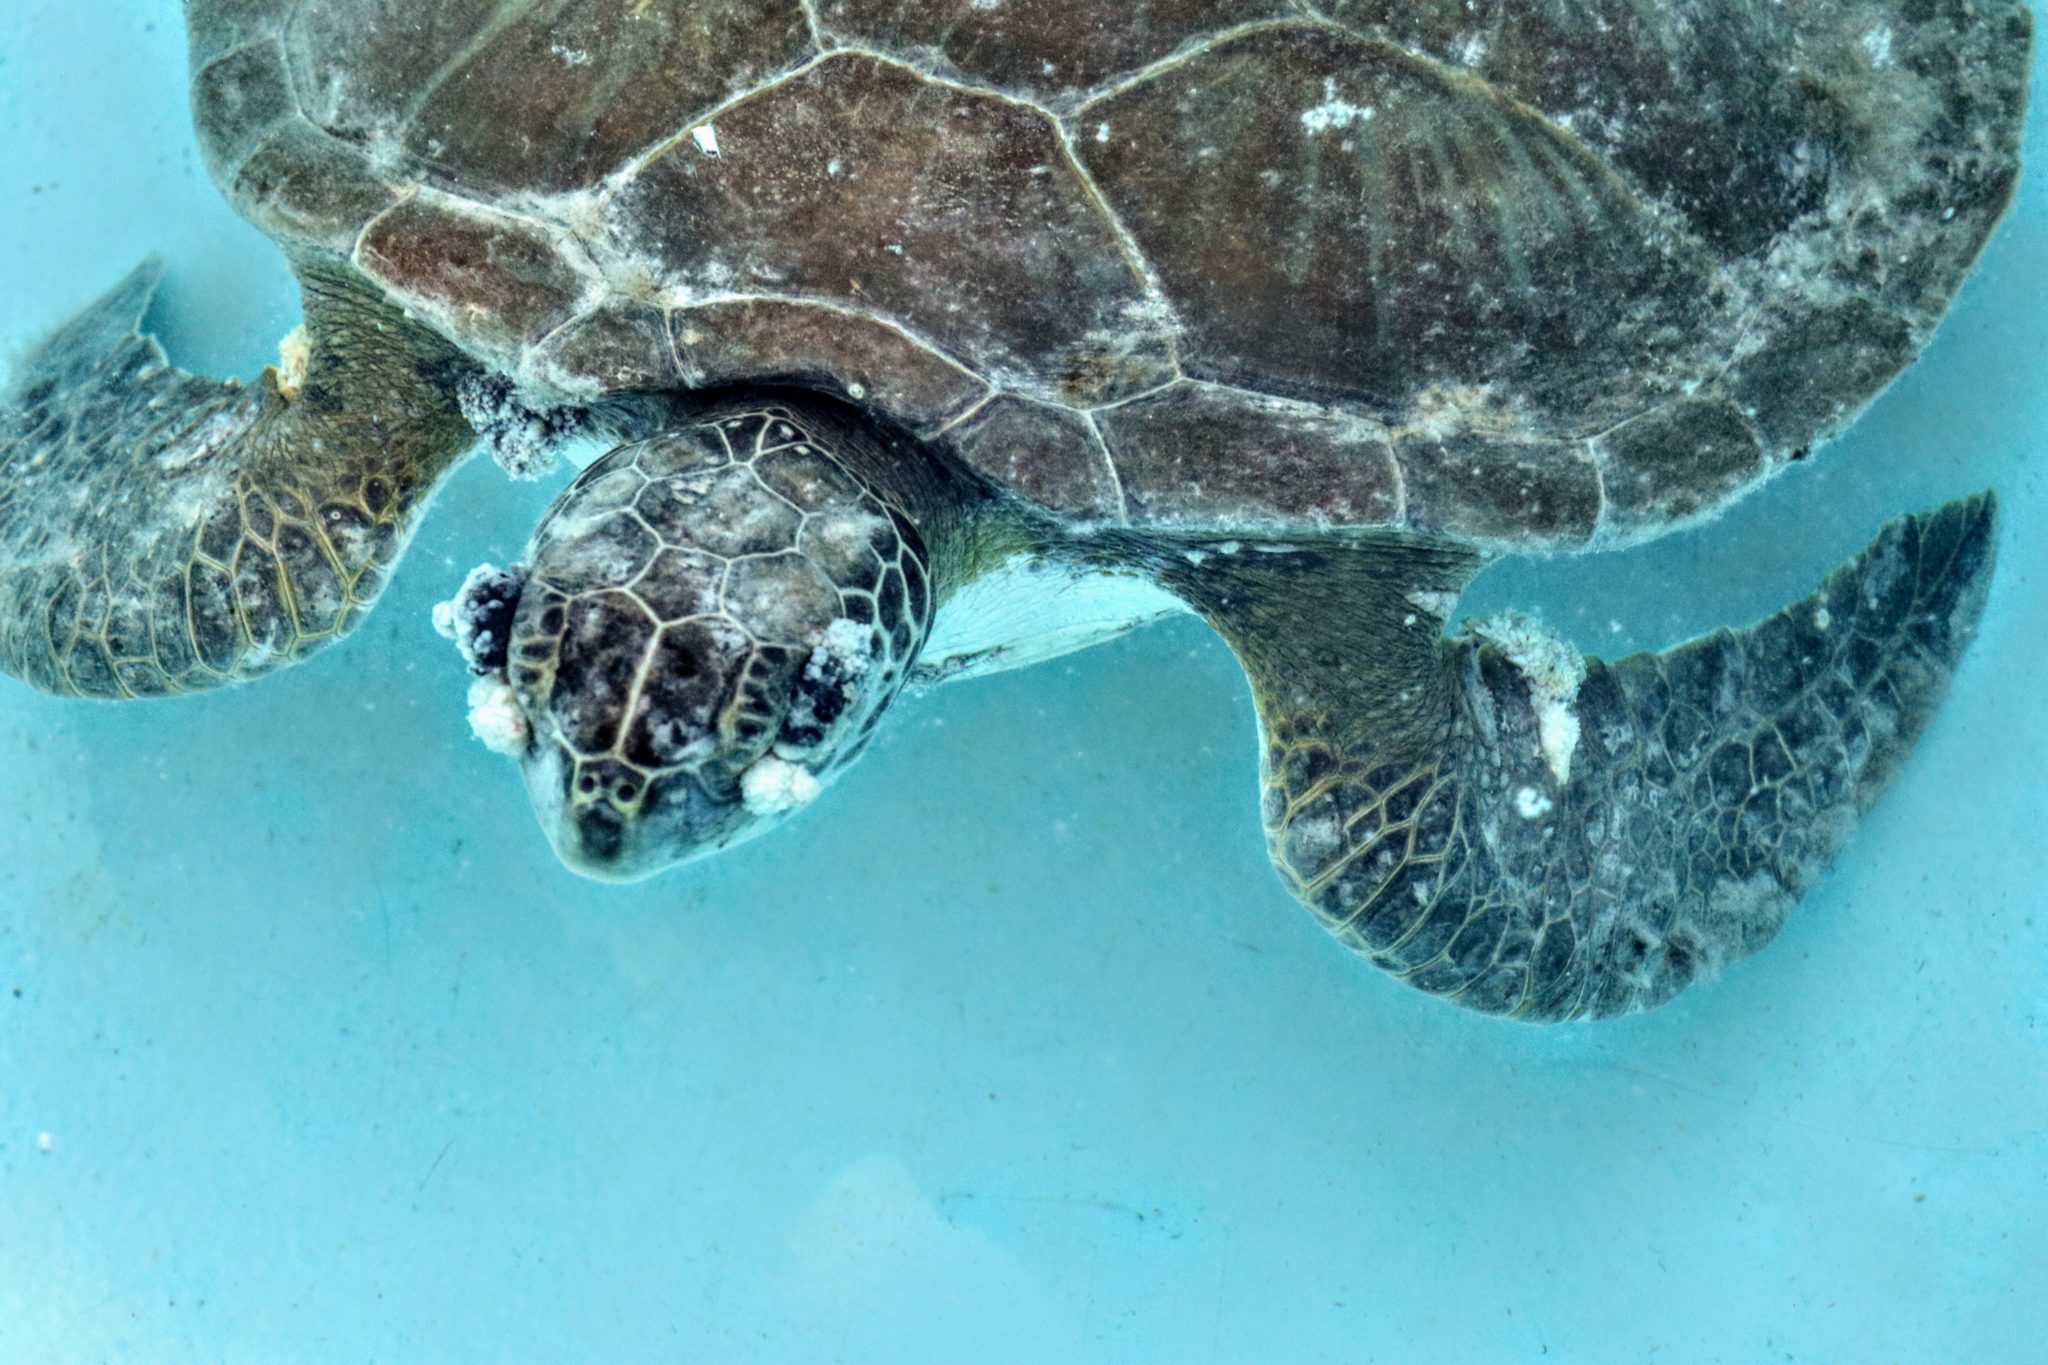 Alex, a Green sea turtle with debilitating FP eye tumors covering both eyes.